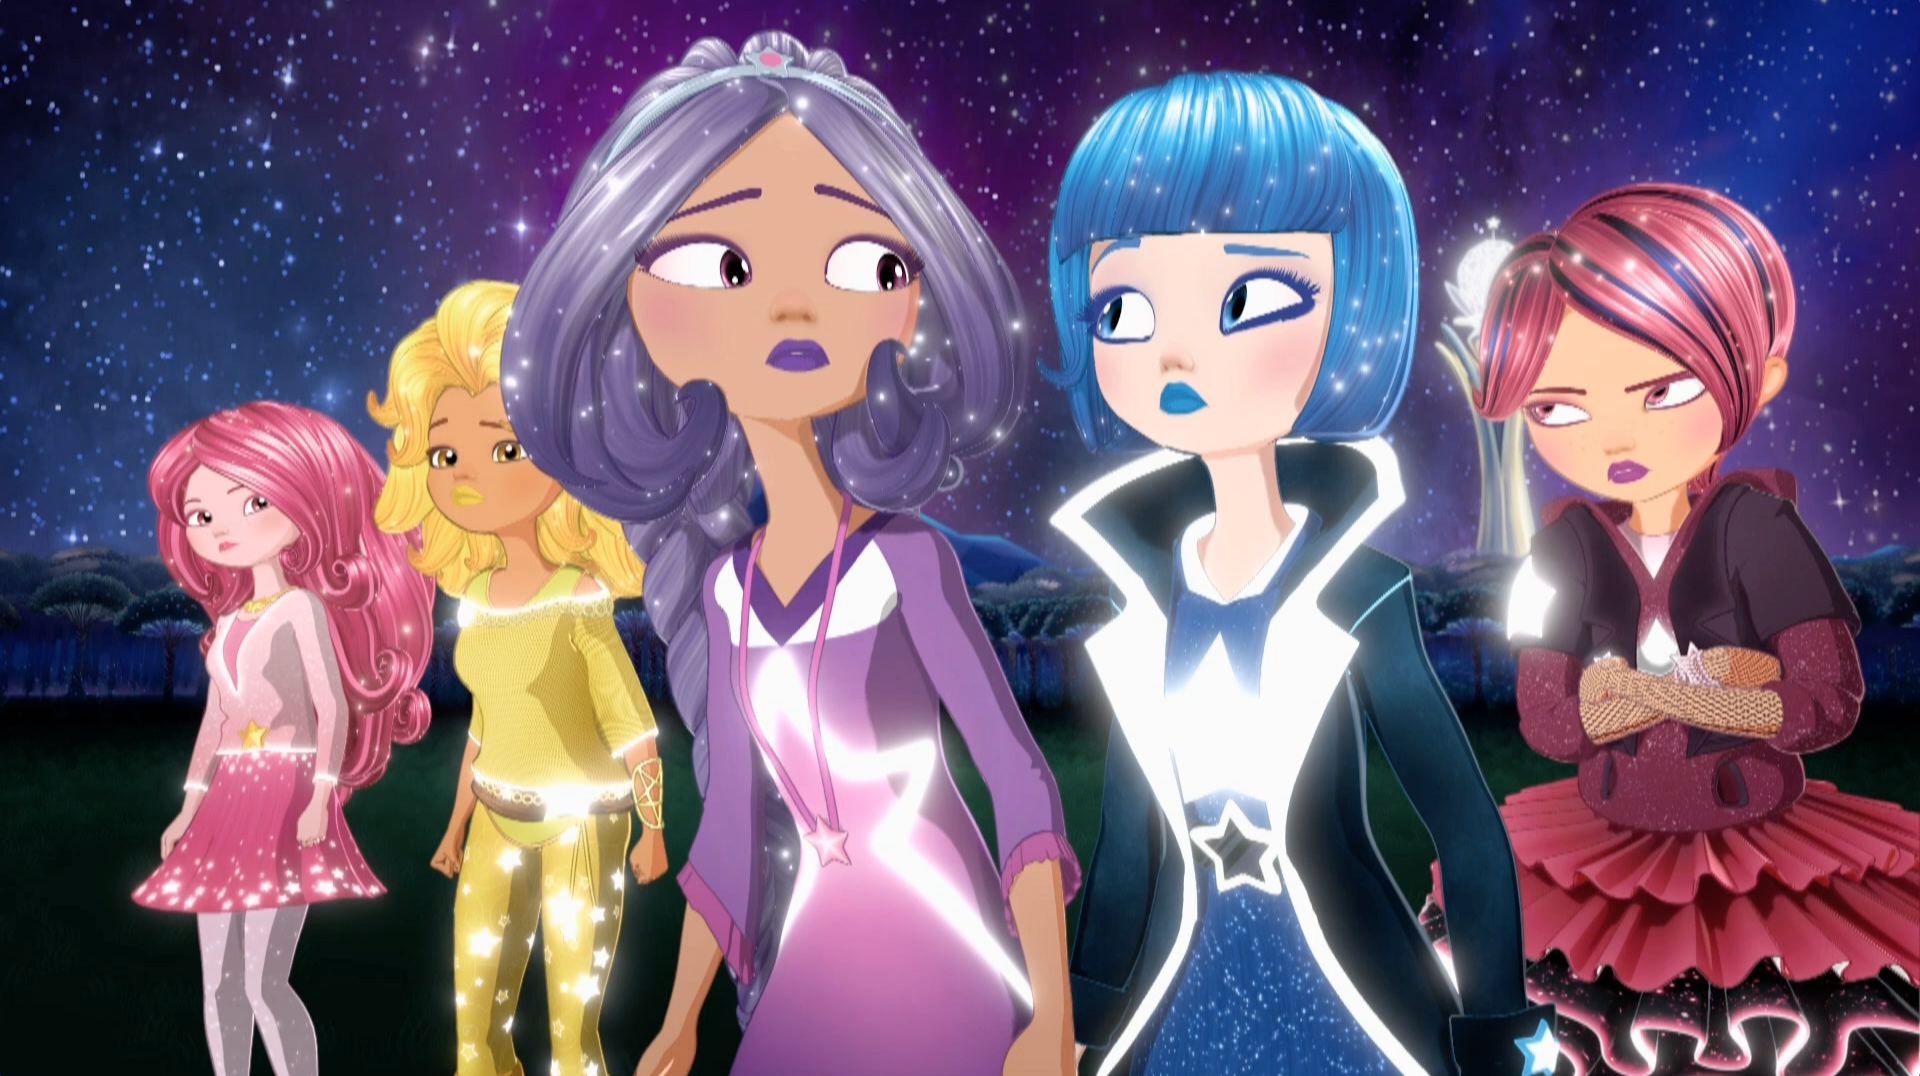 Starlianas brilhantes - Star Darlings